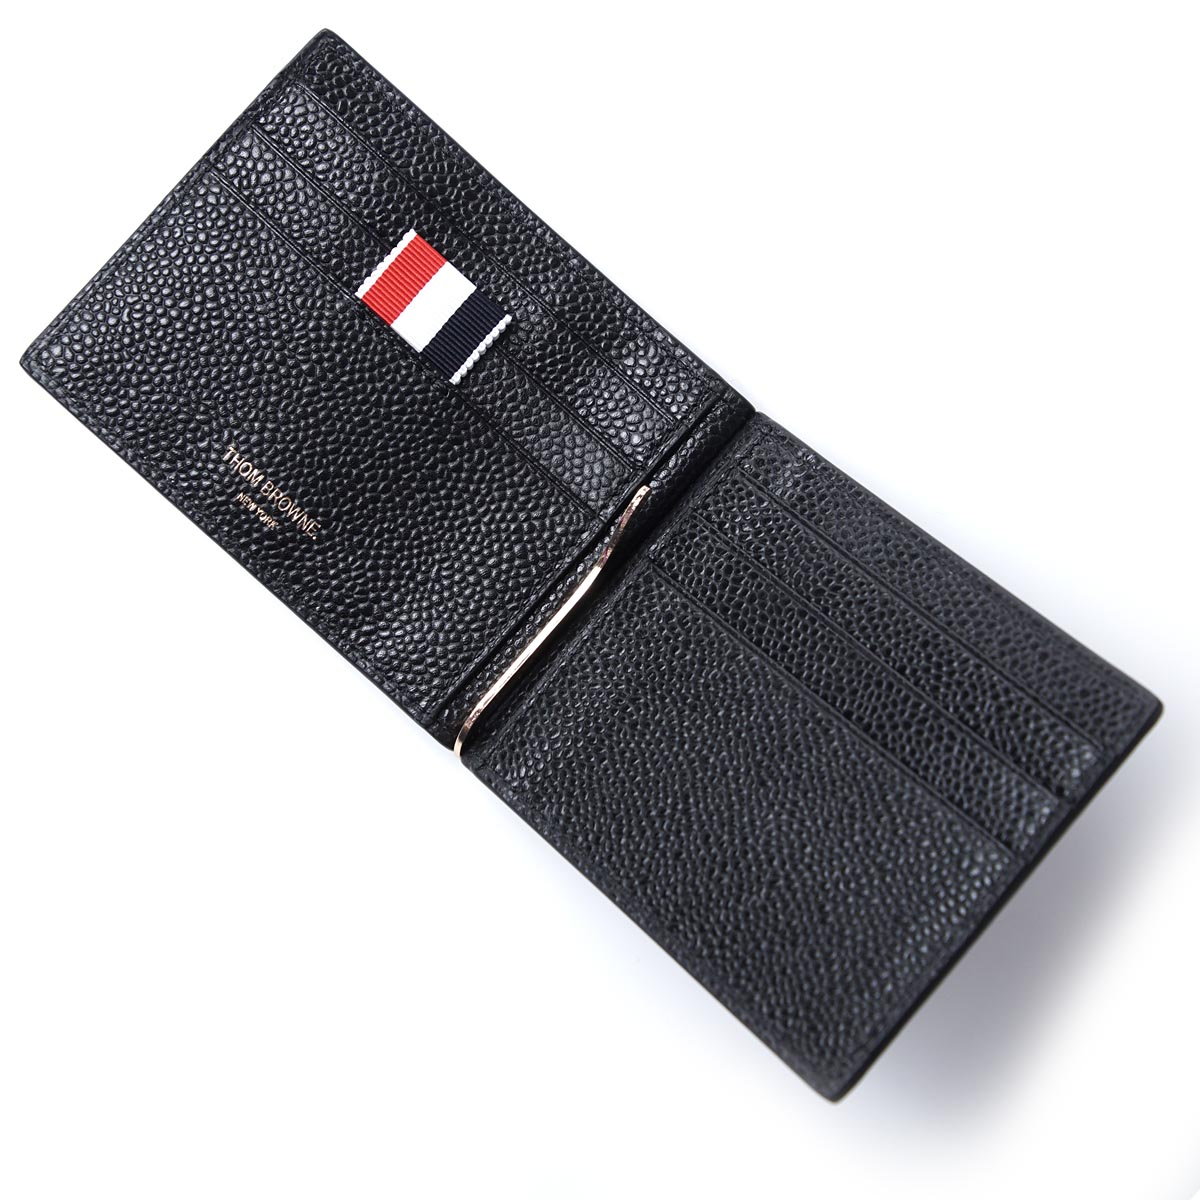 save off d6ed3 83189 Tom Browne THOM BROWNE. Money clip black men wallet wallet leather gift  present maw025l 00198 001 MONEY CLIP WALLET IN PEBBLE GRAIN